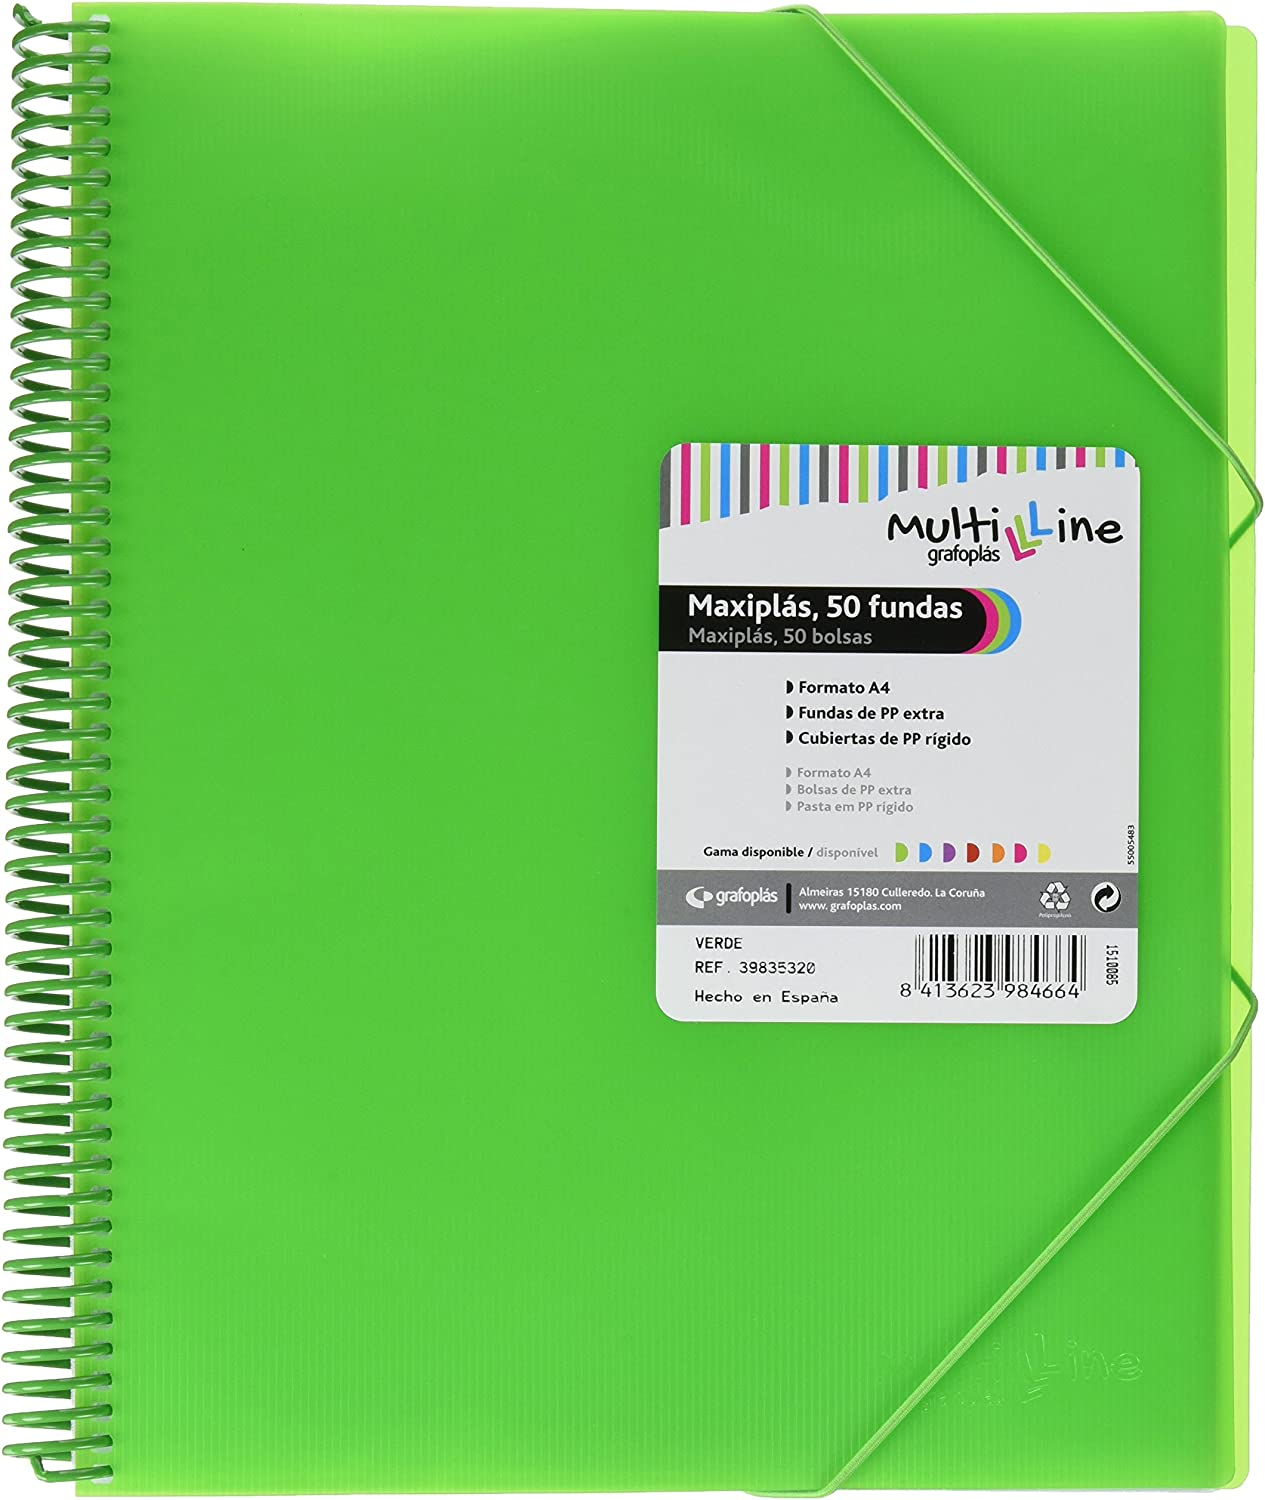 Grafoplás 39835320 - Carpeta 50 fundas A4 de espiral - Color verde